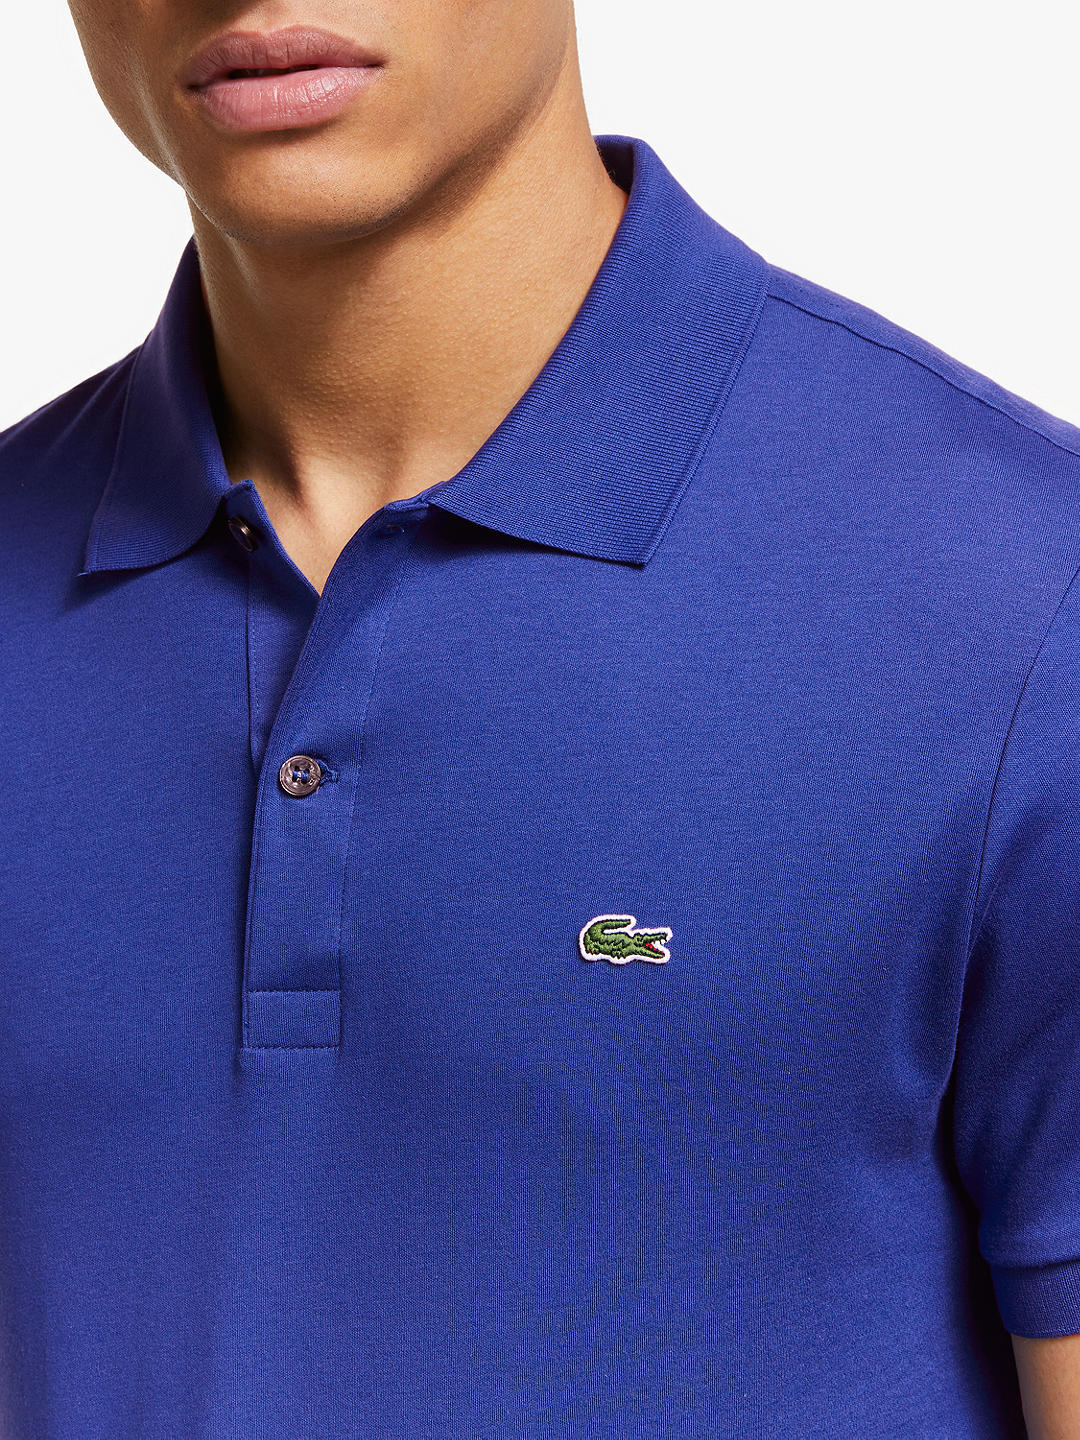 Lacoste Solid Pima Cotton Short-Sleeve Polo Shirt